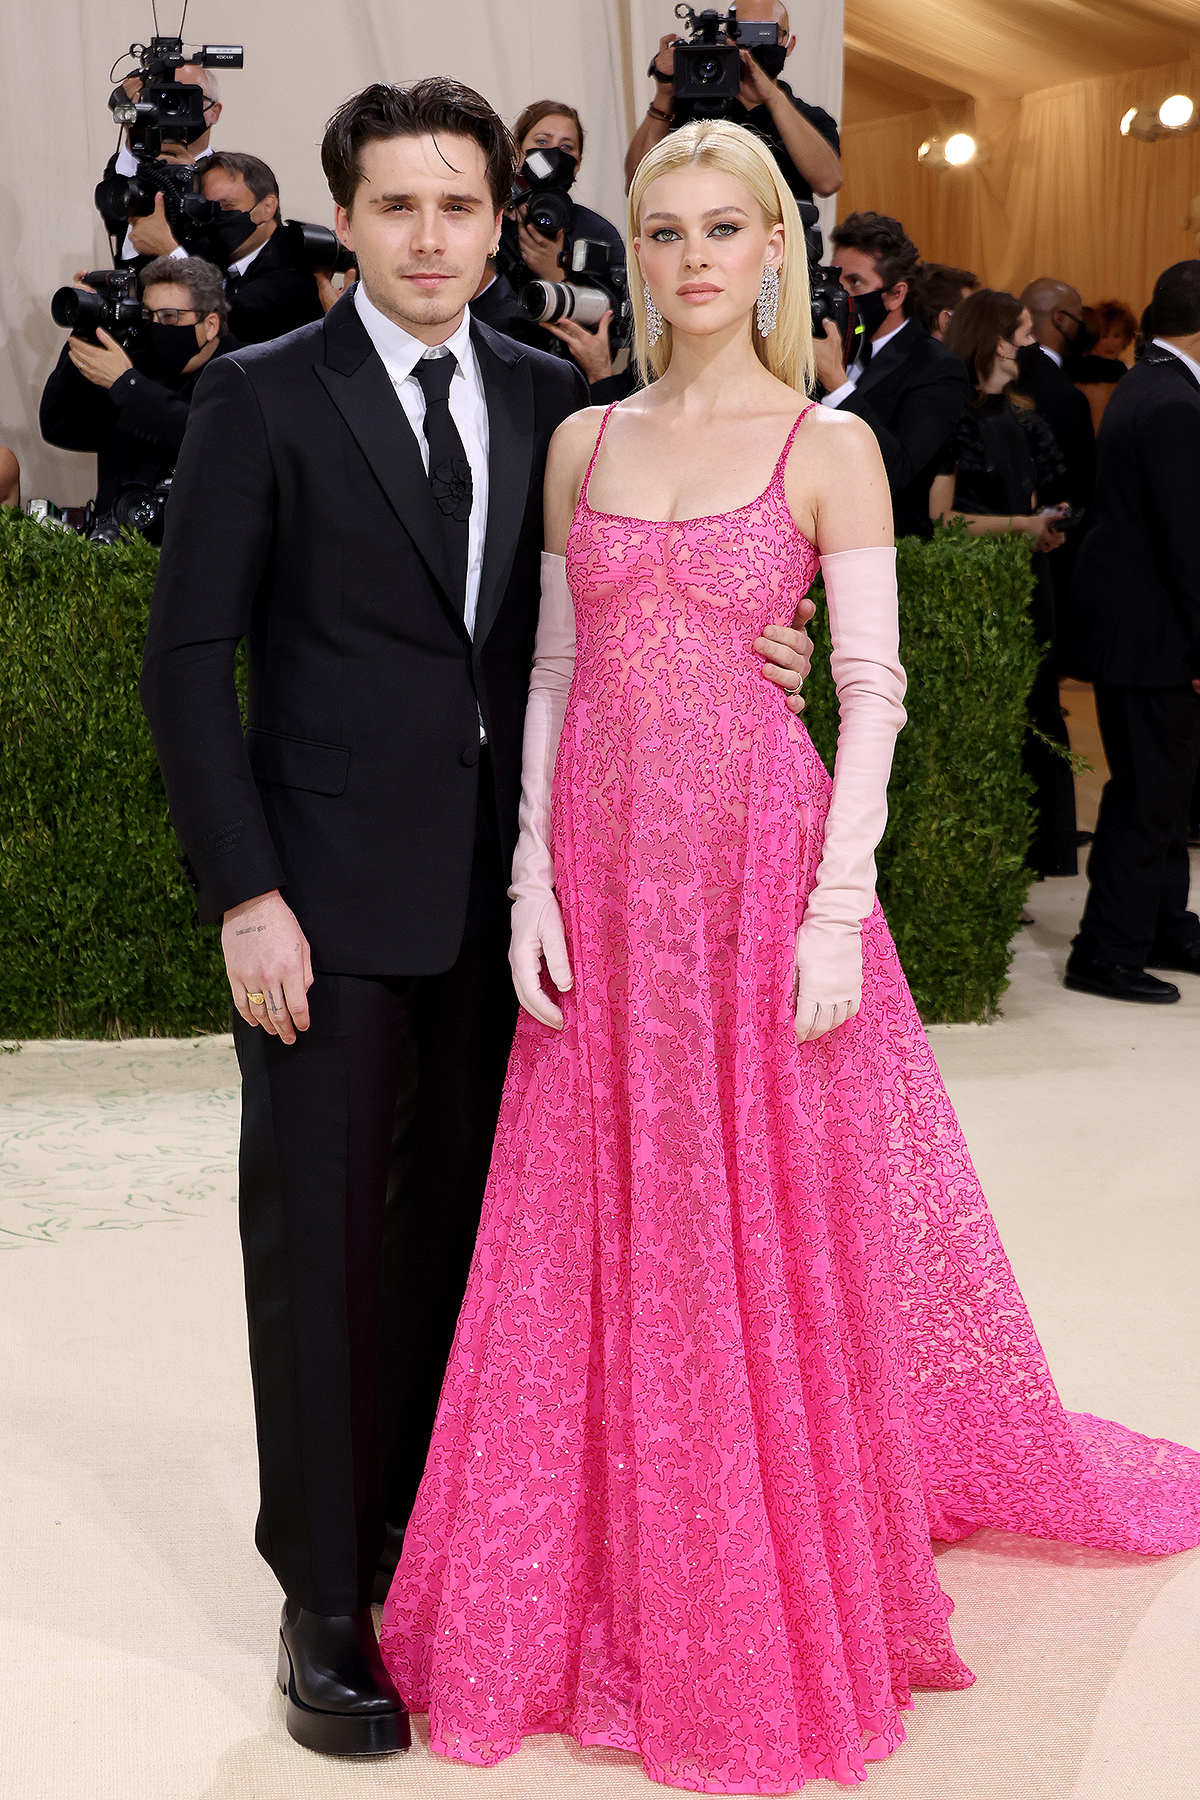 Brooklyn Beckham and Nicola Peltz attend The 2021 Met Gala Celebrating In America: A Lexicon Of Fashion at Metropolitan Museum of Art on September 13, 2021